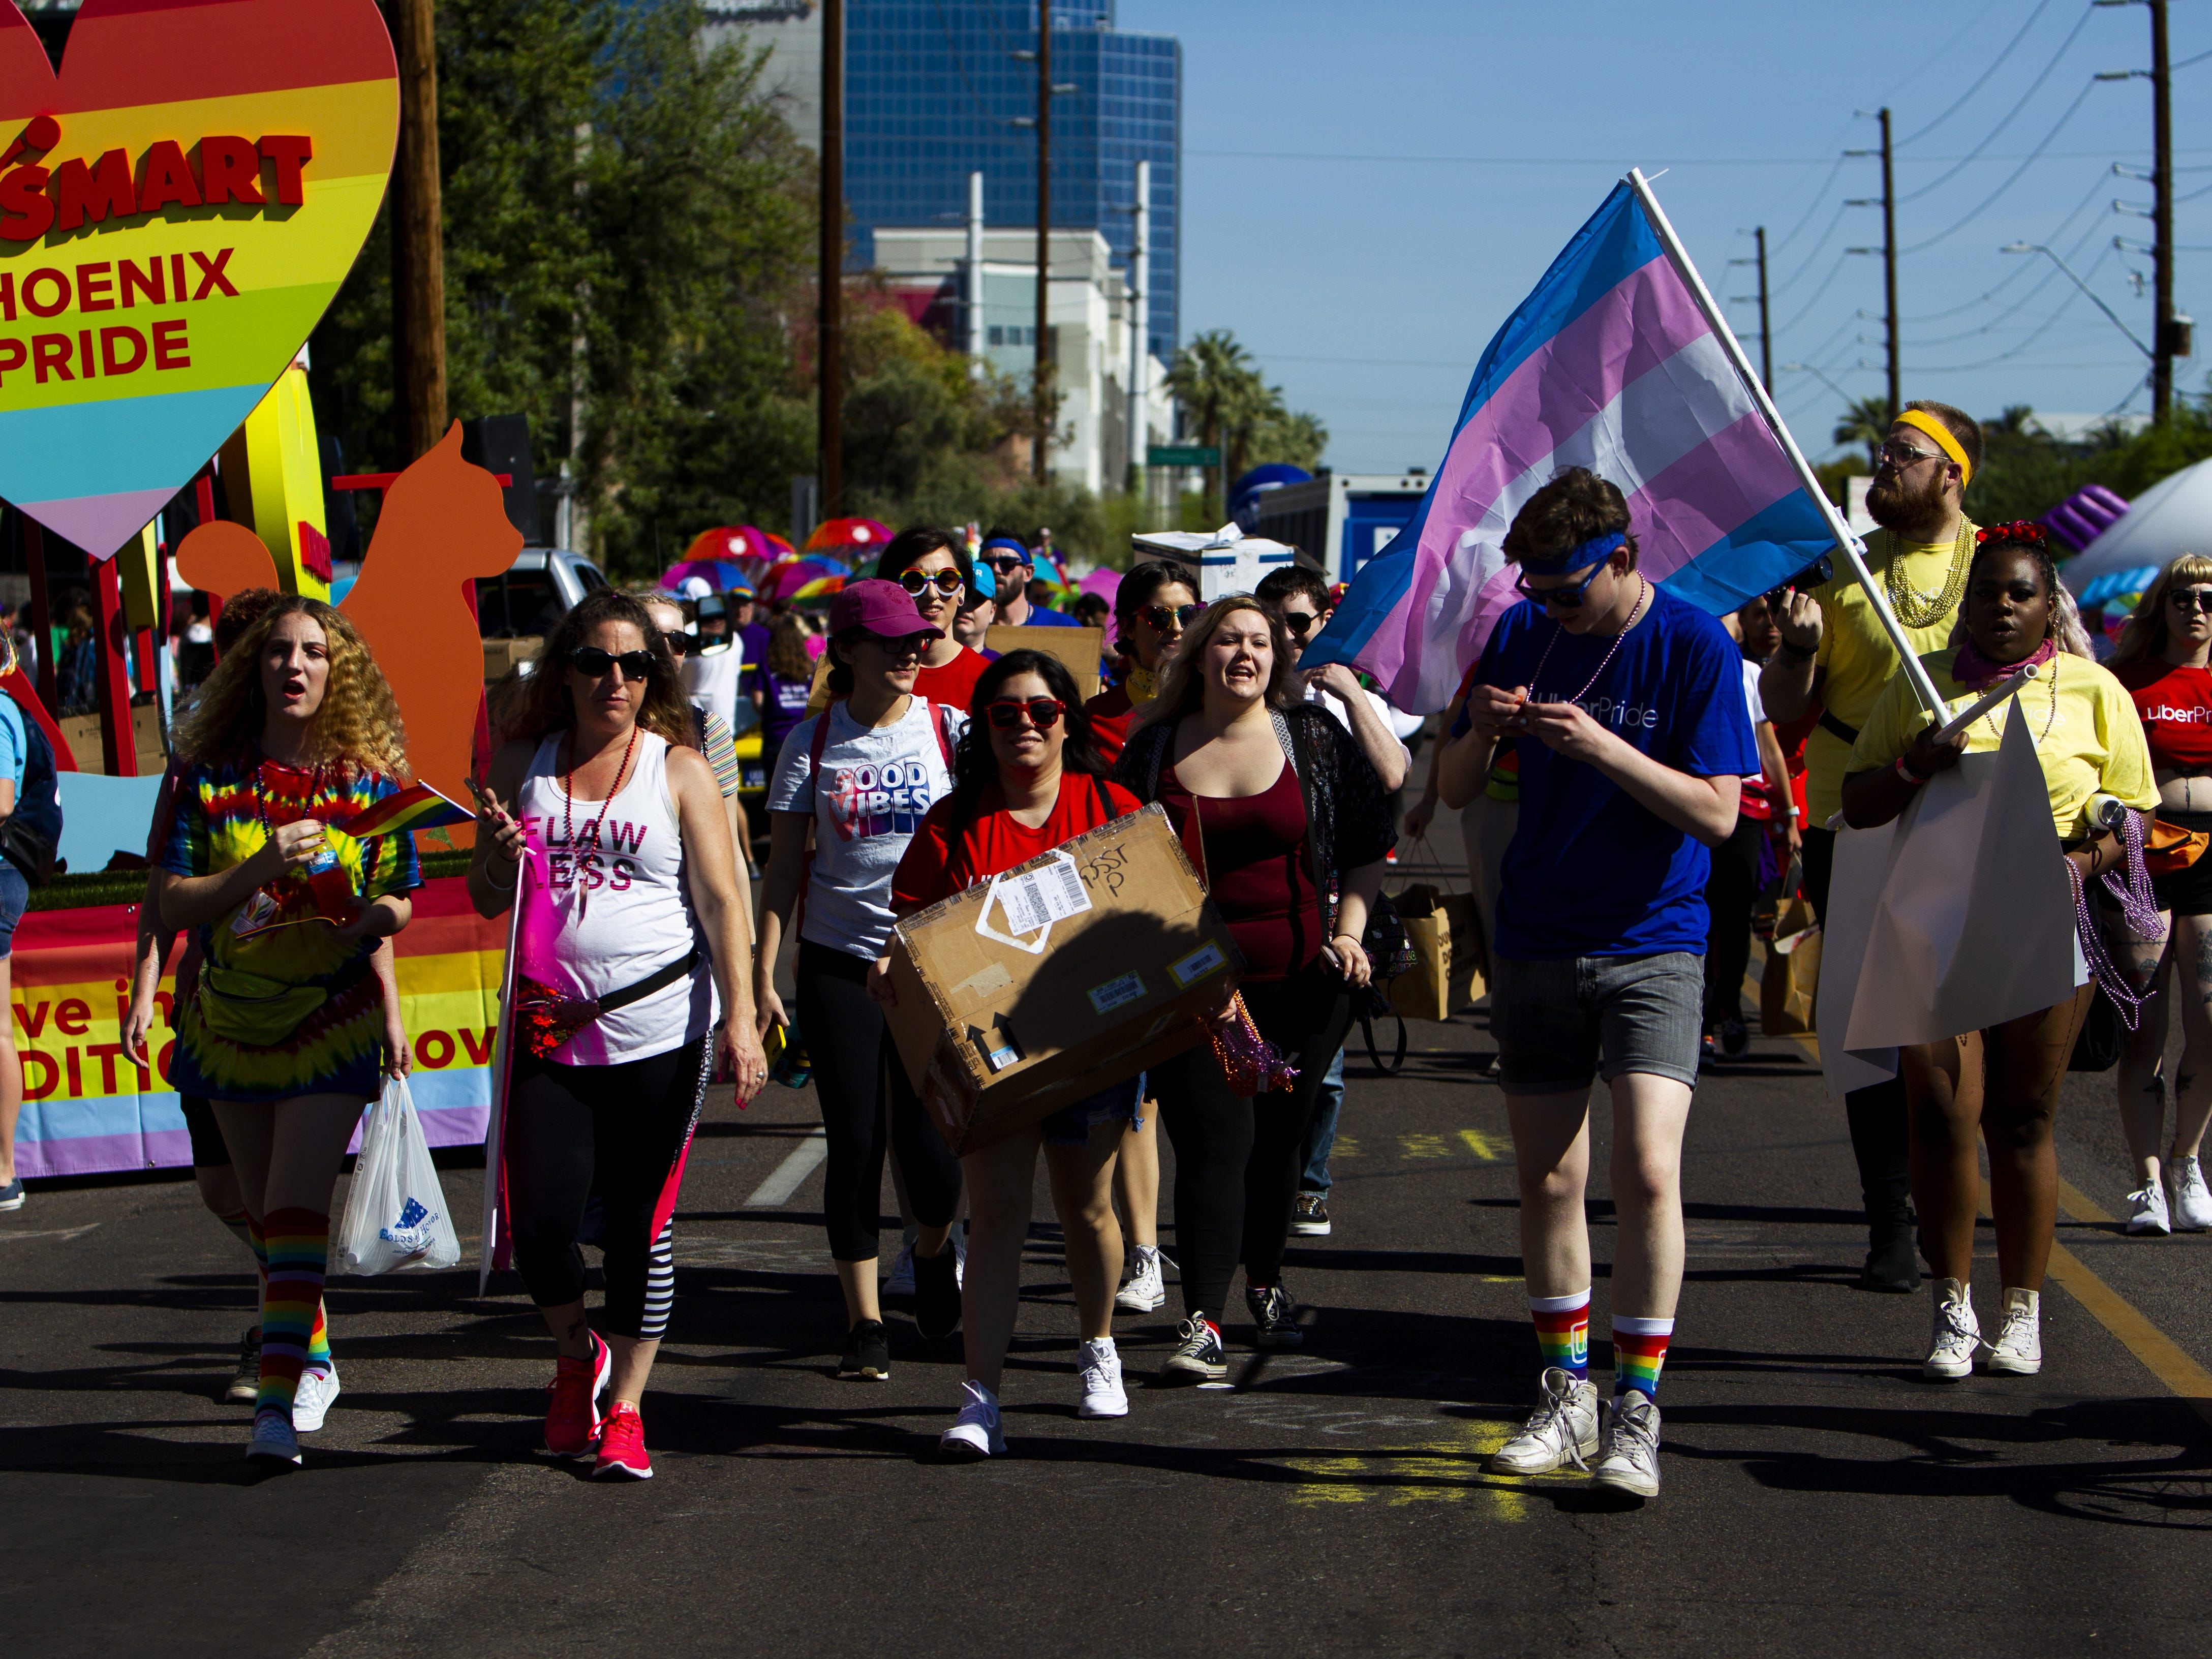 PetSmart marches in the Phoenix Pride Parade on April 7, 2019.